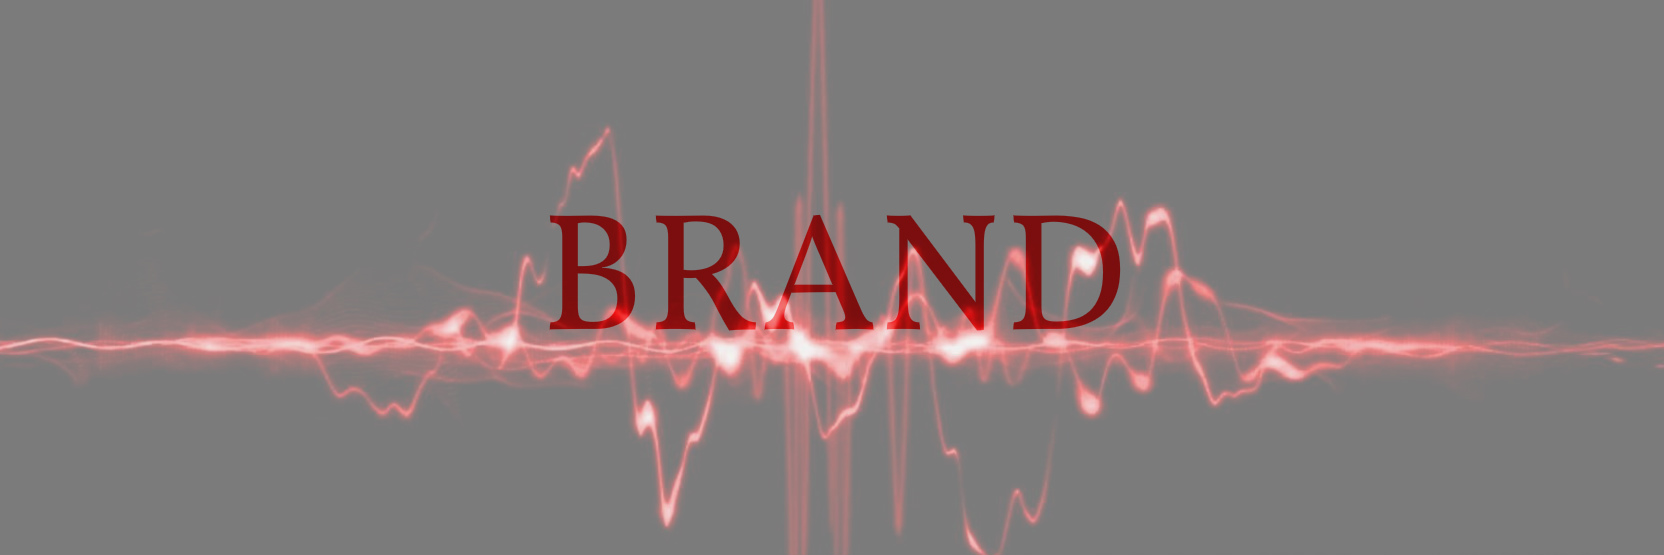 brand strategy consulting